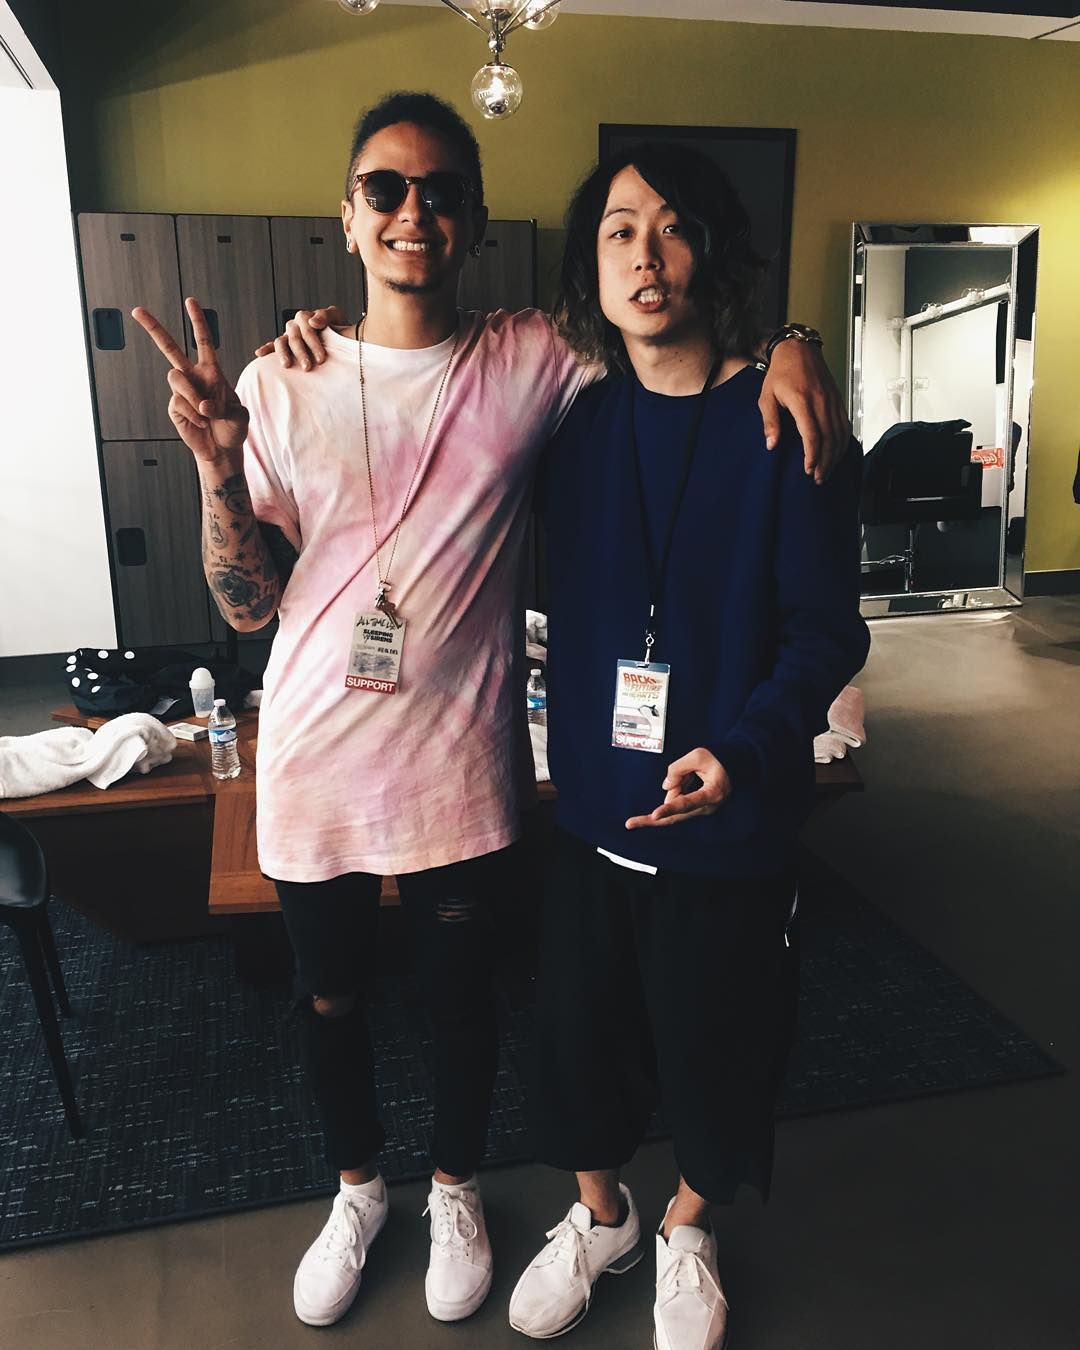 「Having such a great time on tour with one of my new best friends @tomo_10969 ✌️❤️✌❤️ : @mrnew」